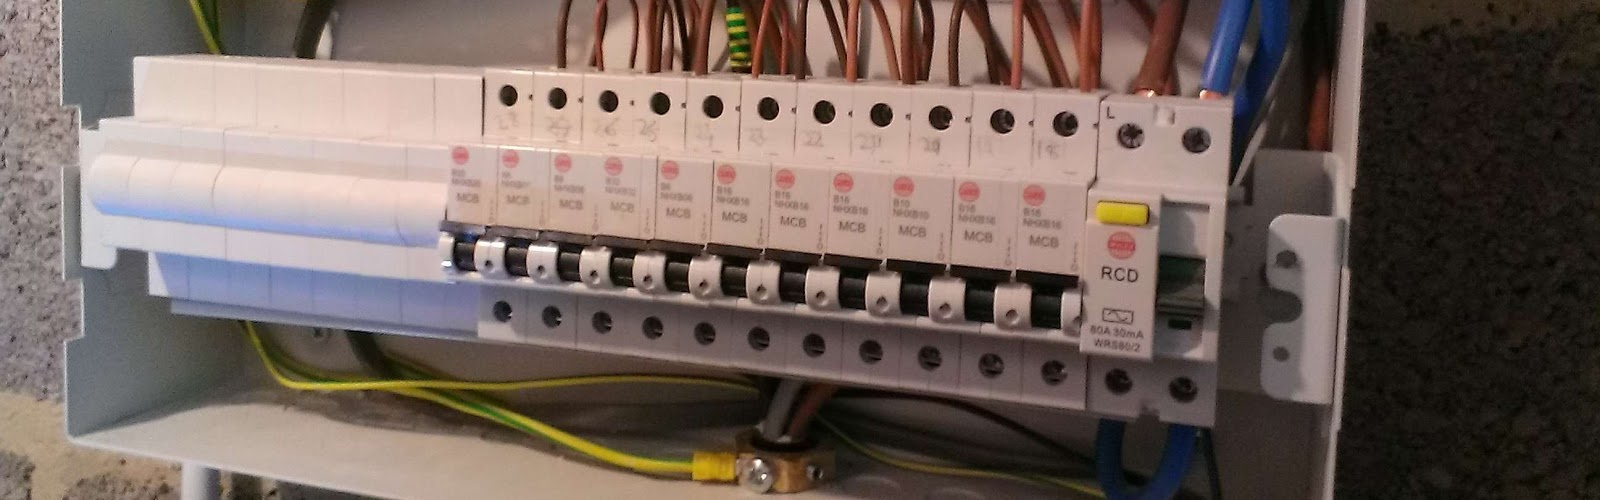 Electrical Contractor Services In West London | Westlon Electrical Contractors